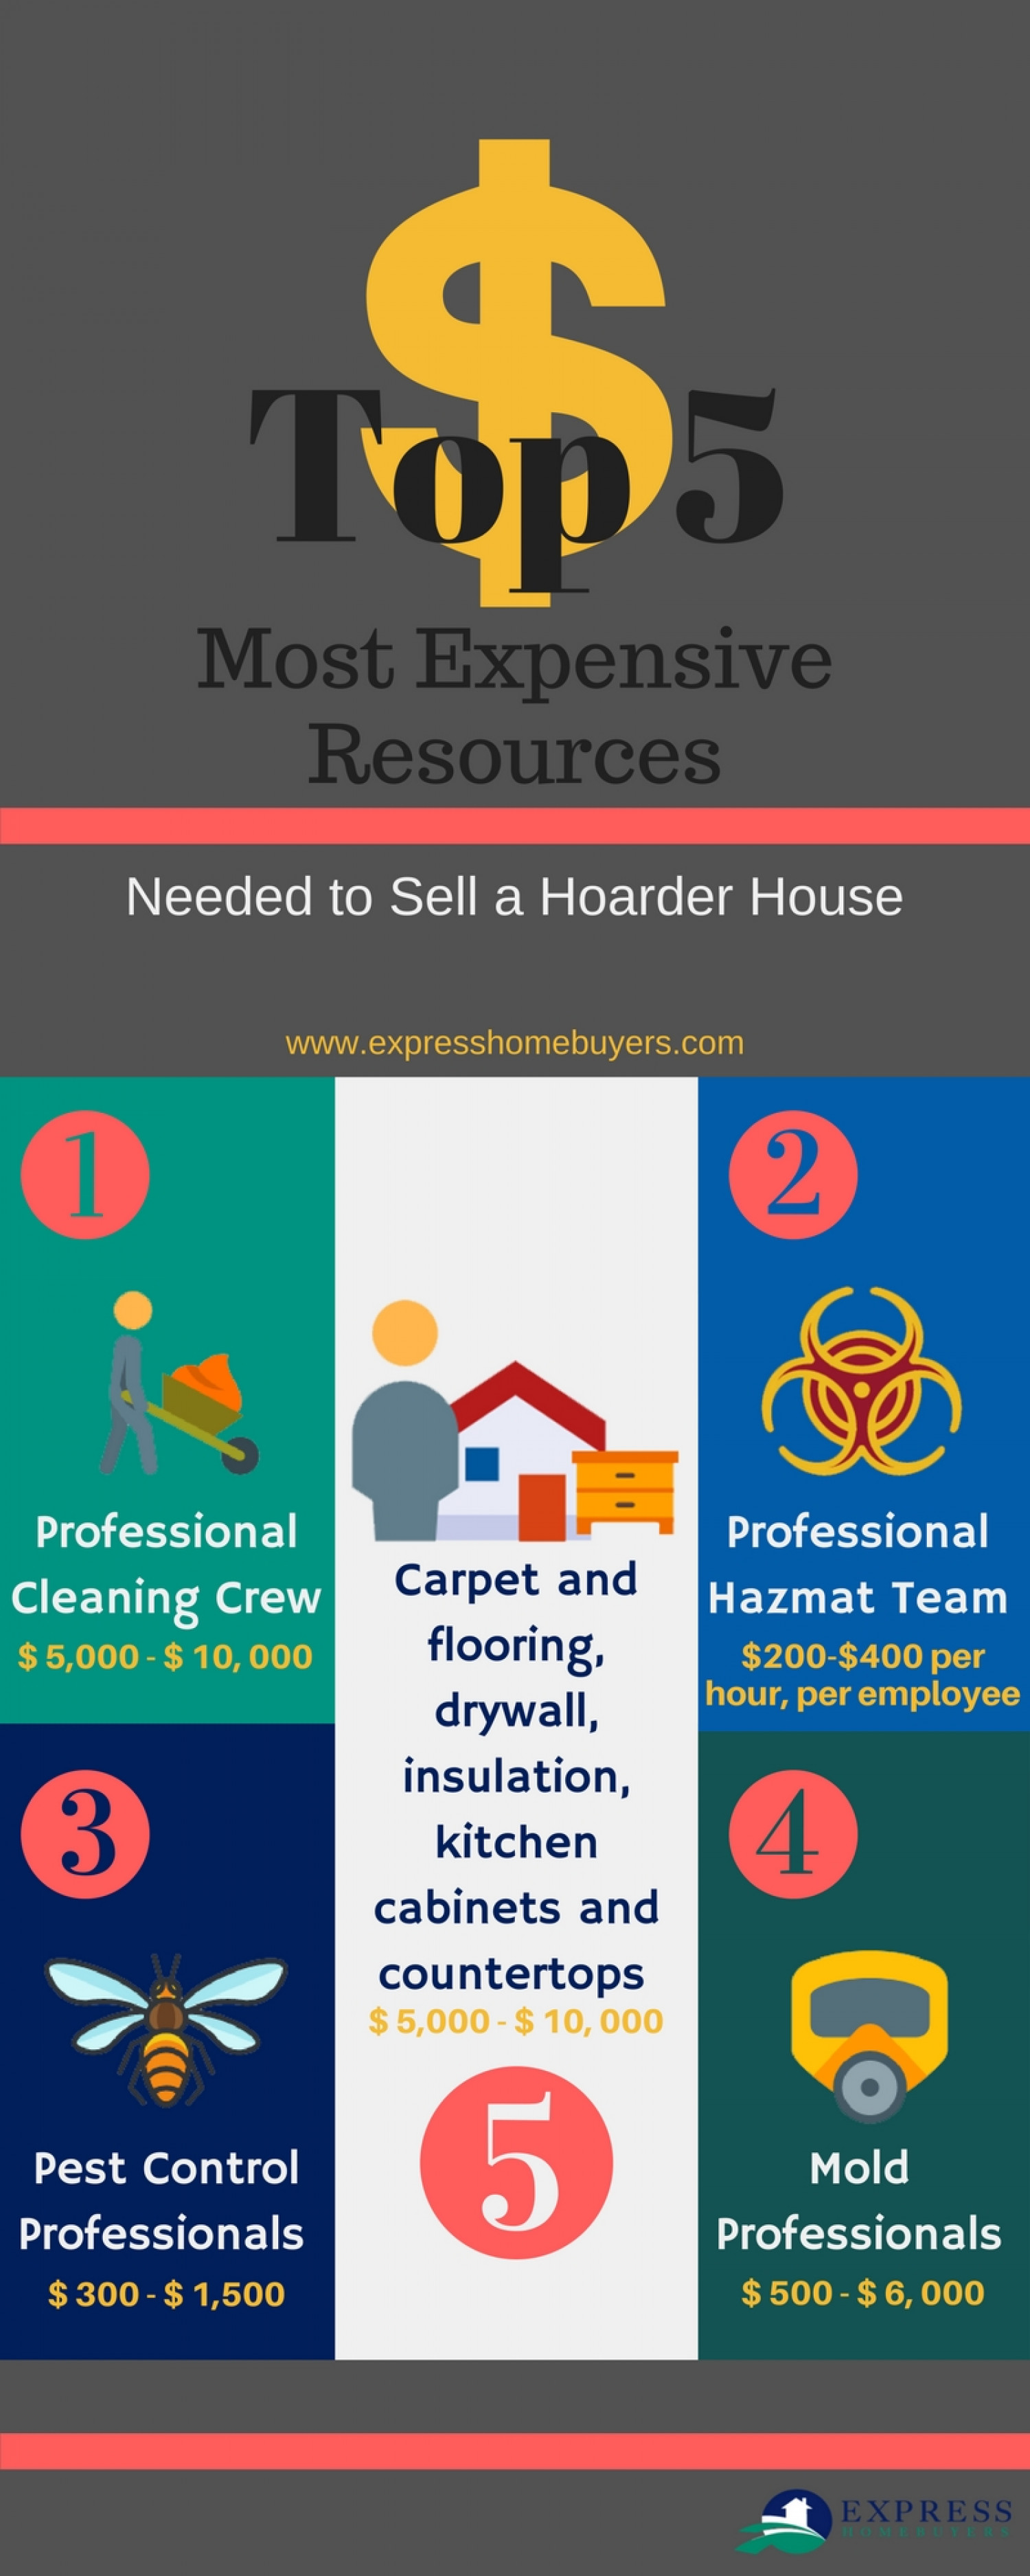 Top 5 Expenses for Hoarders Infographic